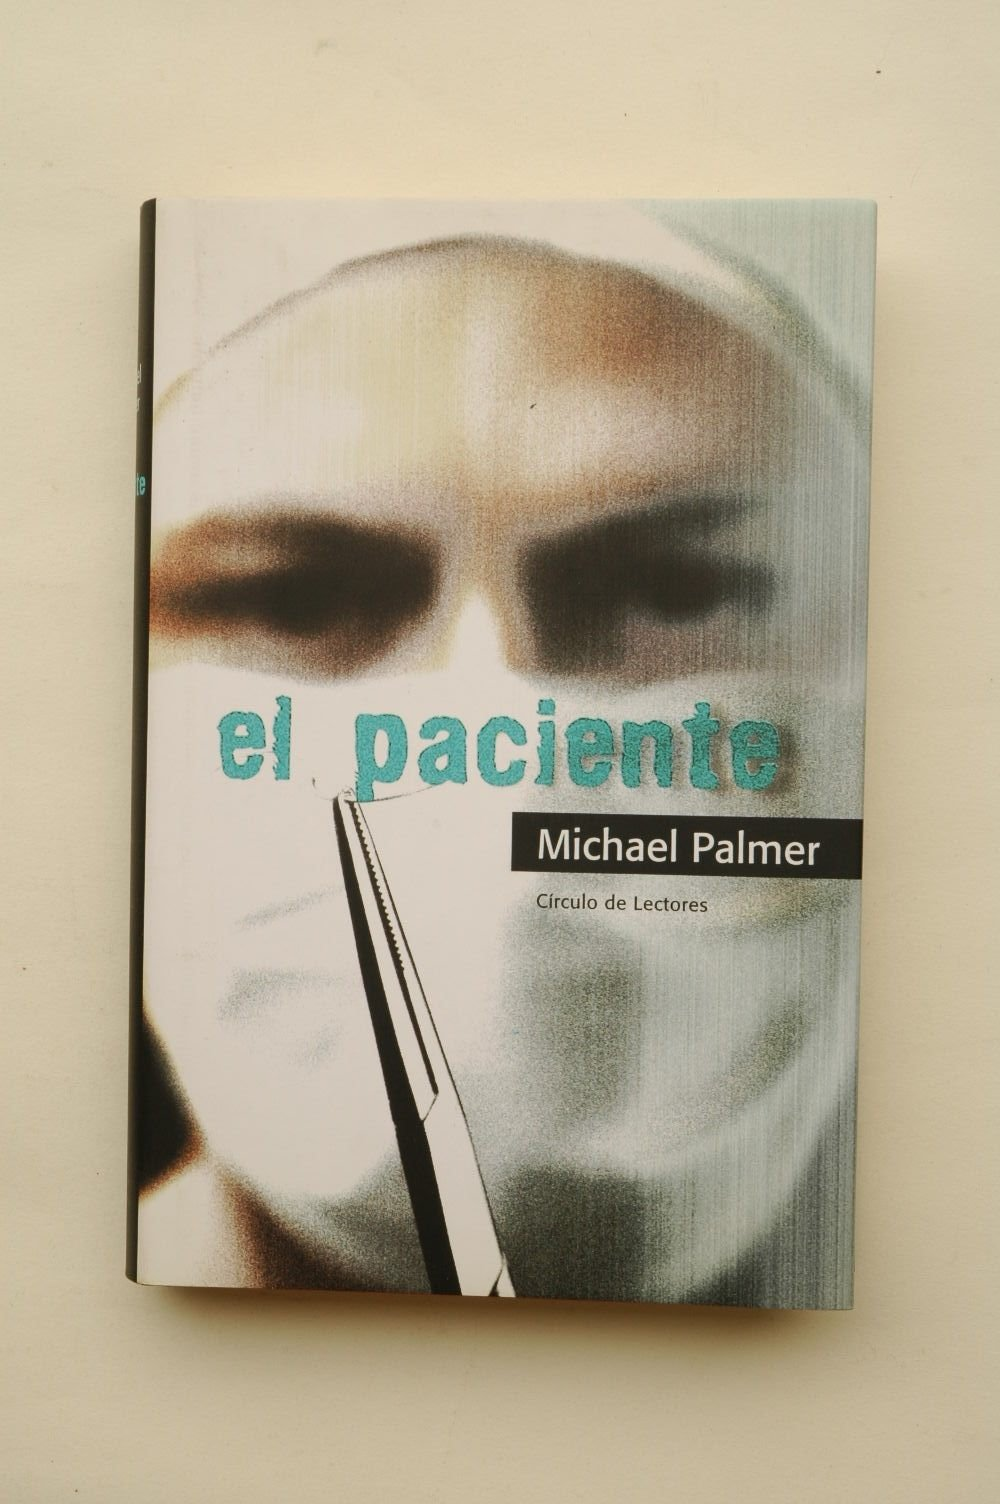 El paciente: Amazon.es: Michael Palmer: Libros